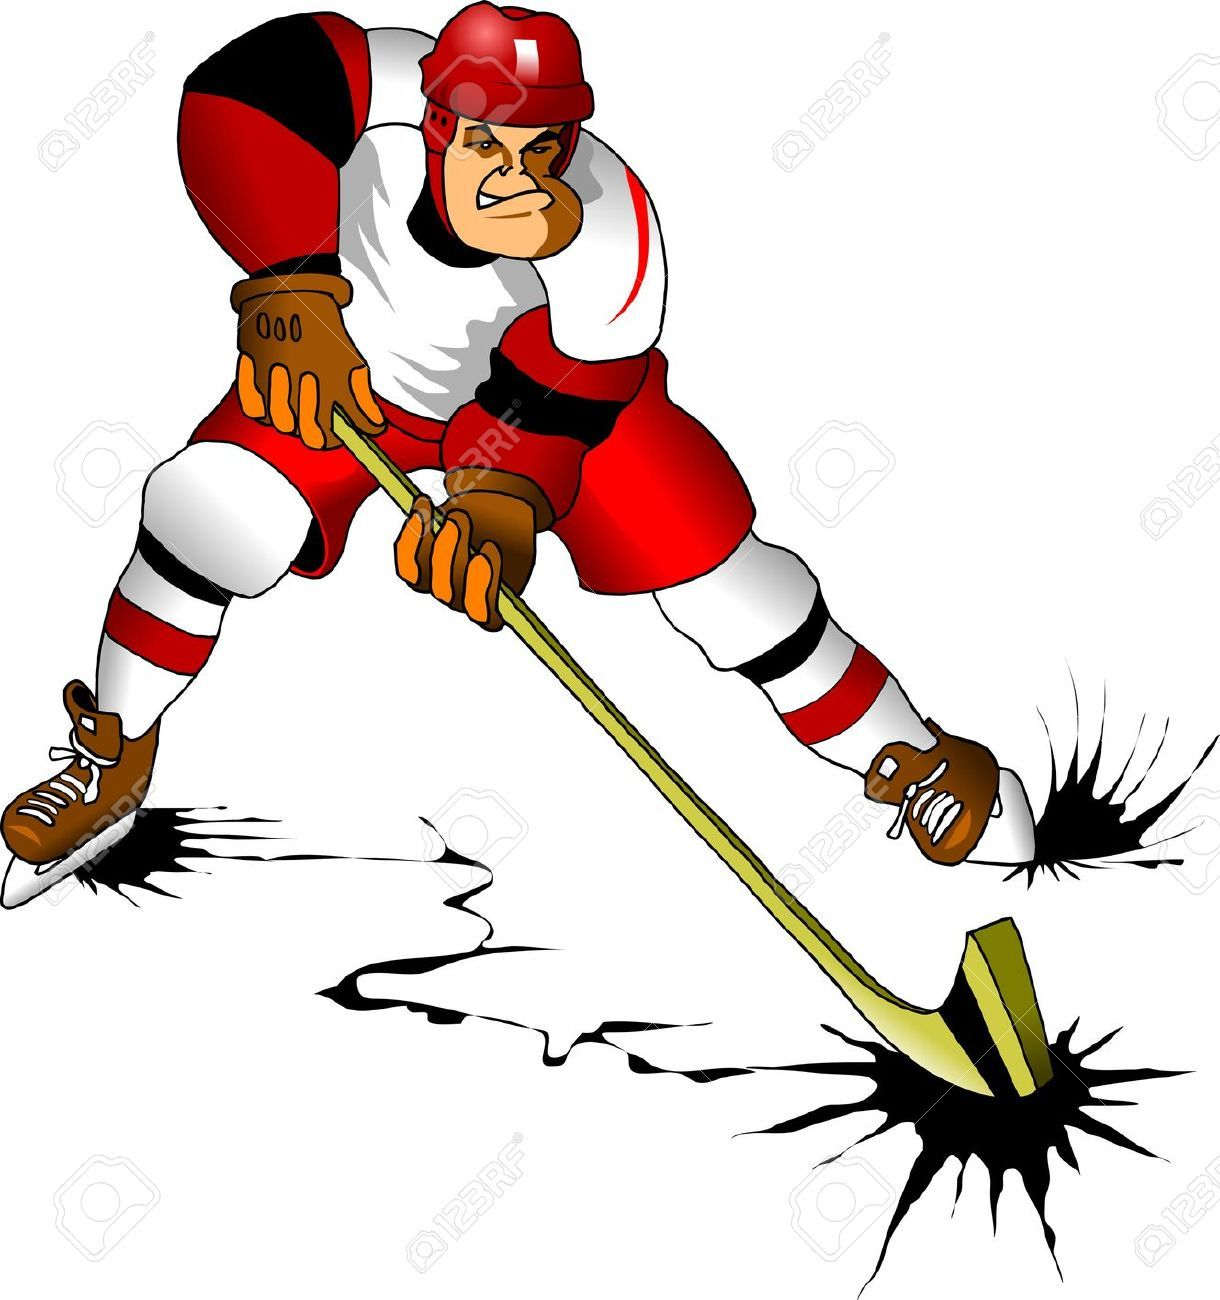 hockey player makes a strong shot on goal rival royalty free rh pinterest co uk revival clip art for churches revival clip art